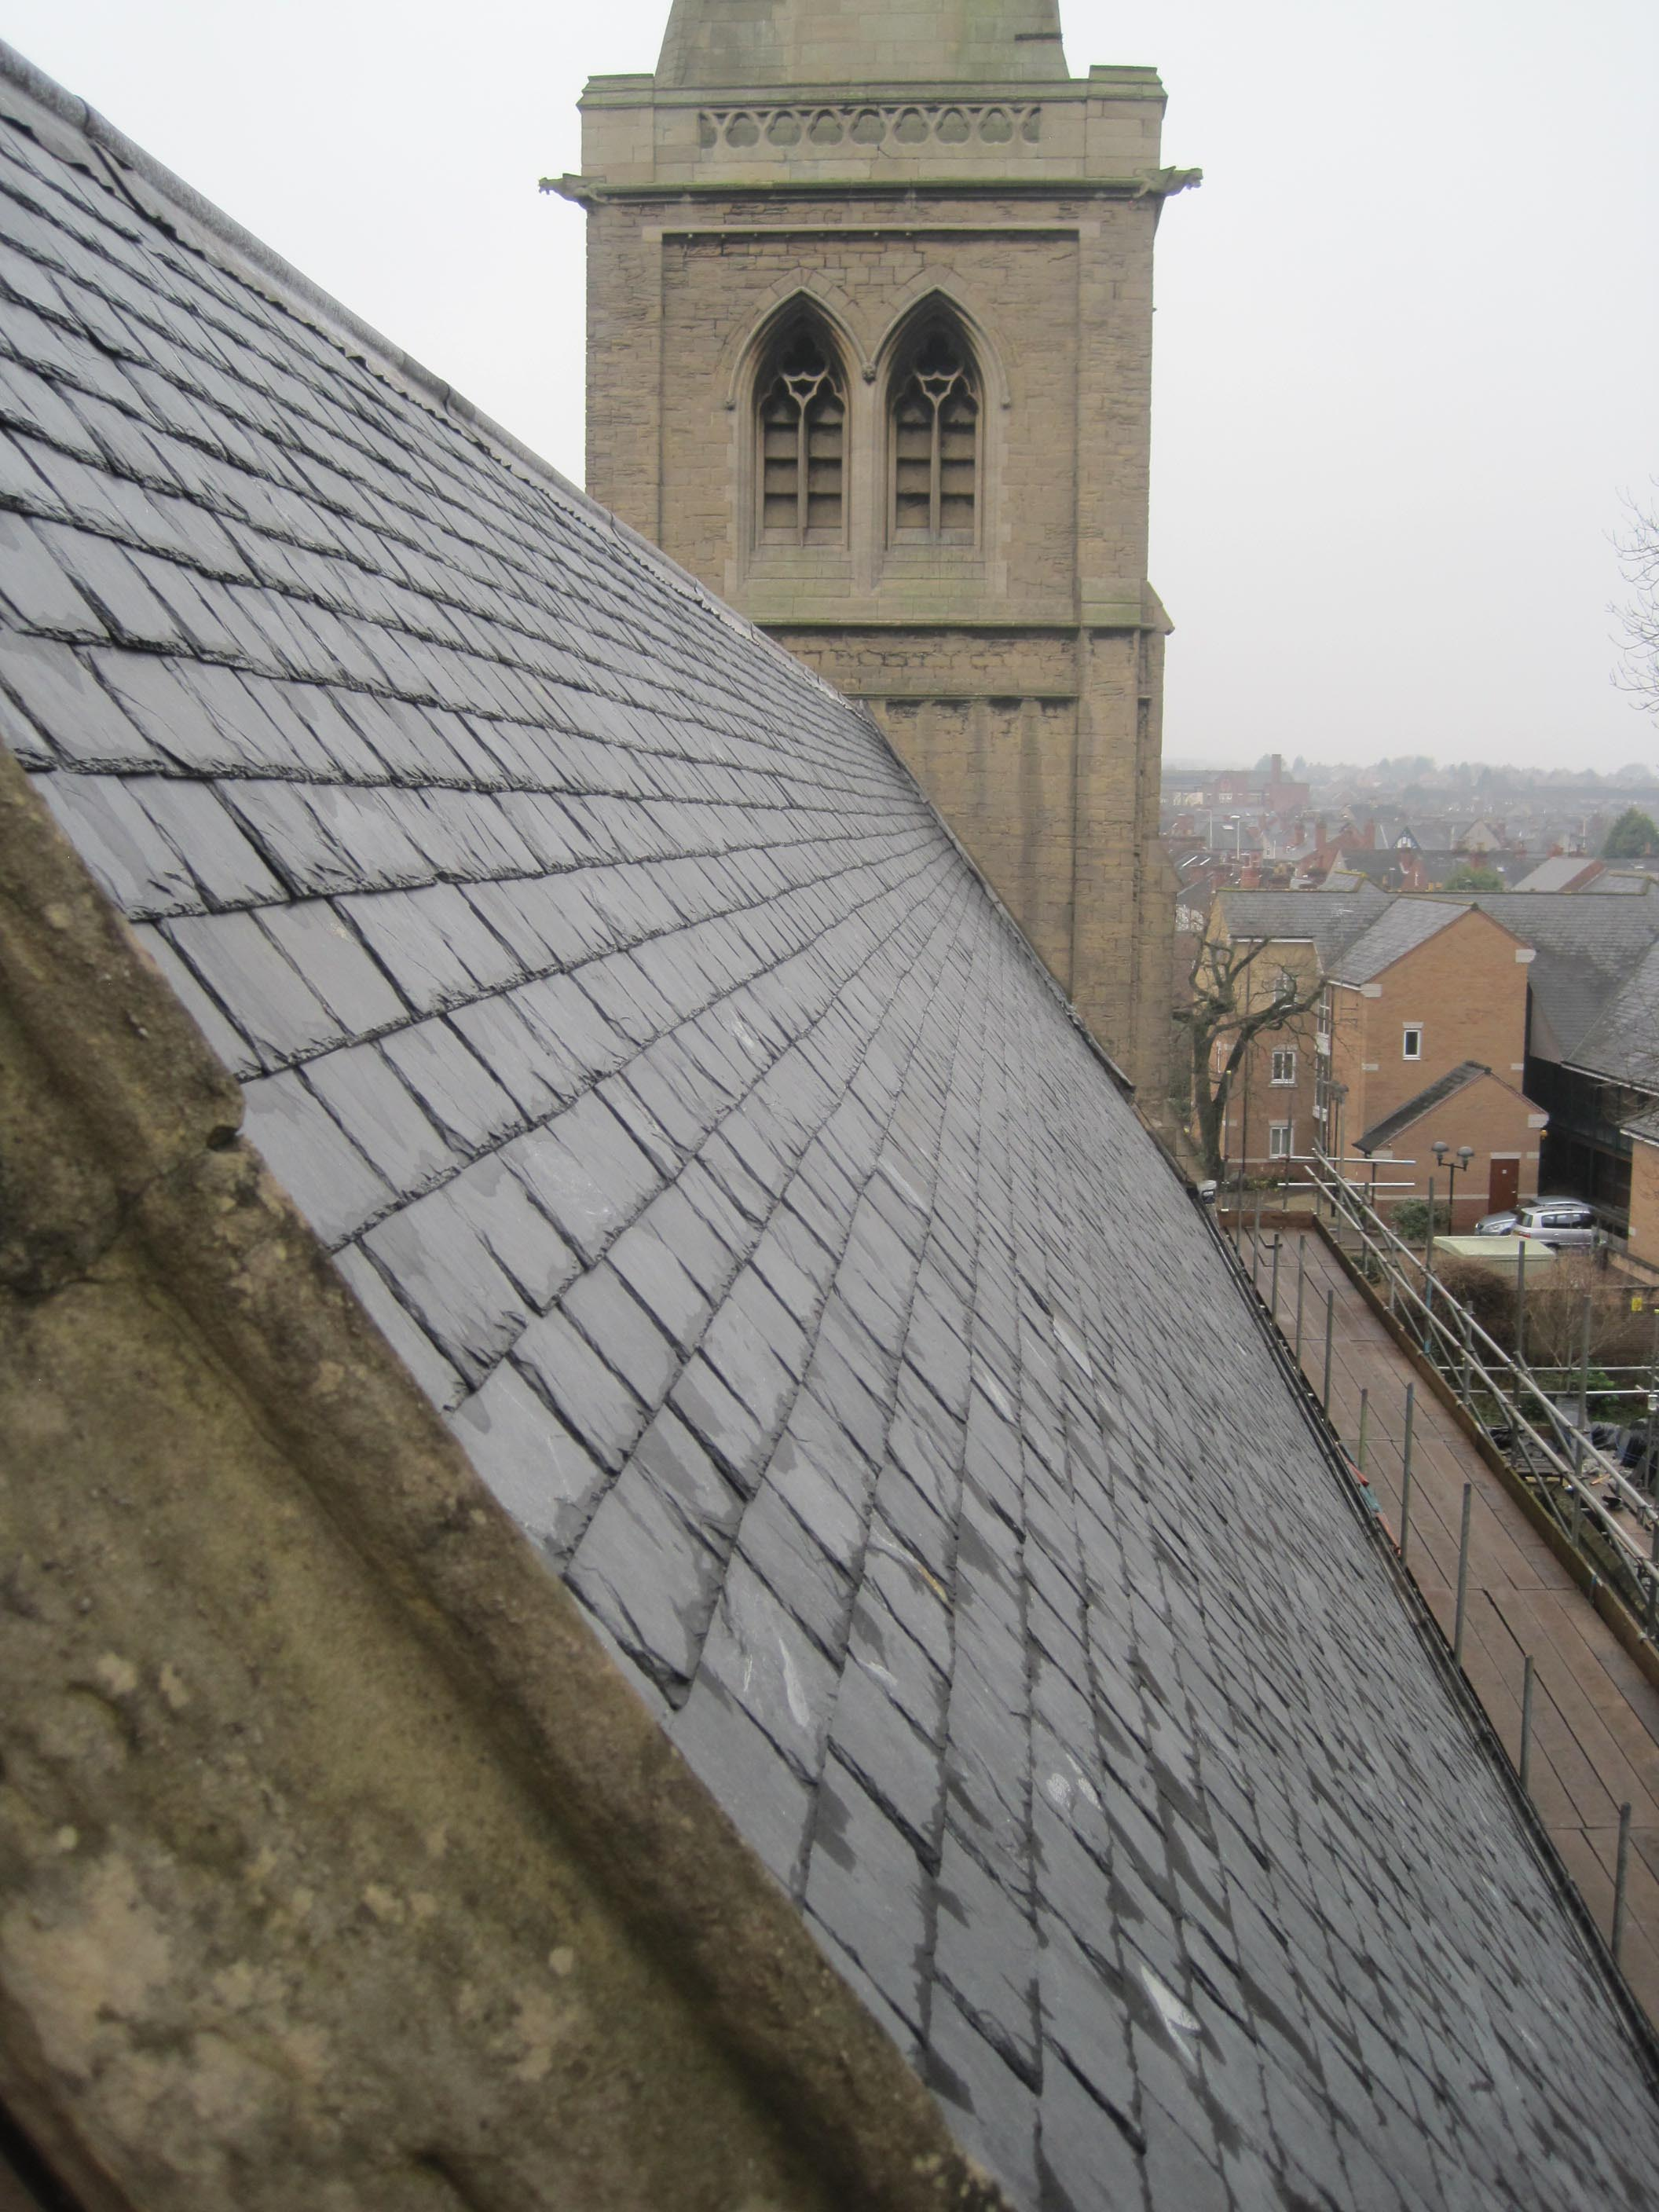 North nave roof completed